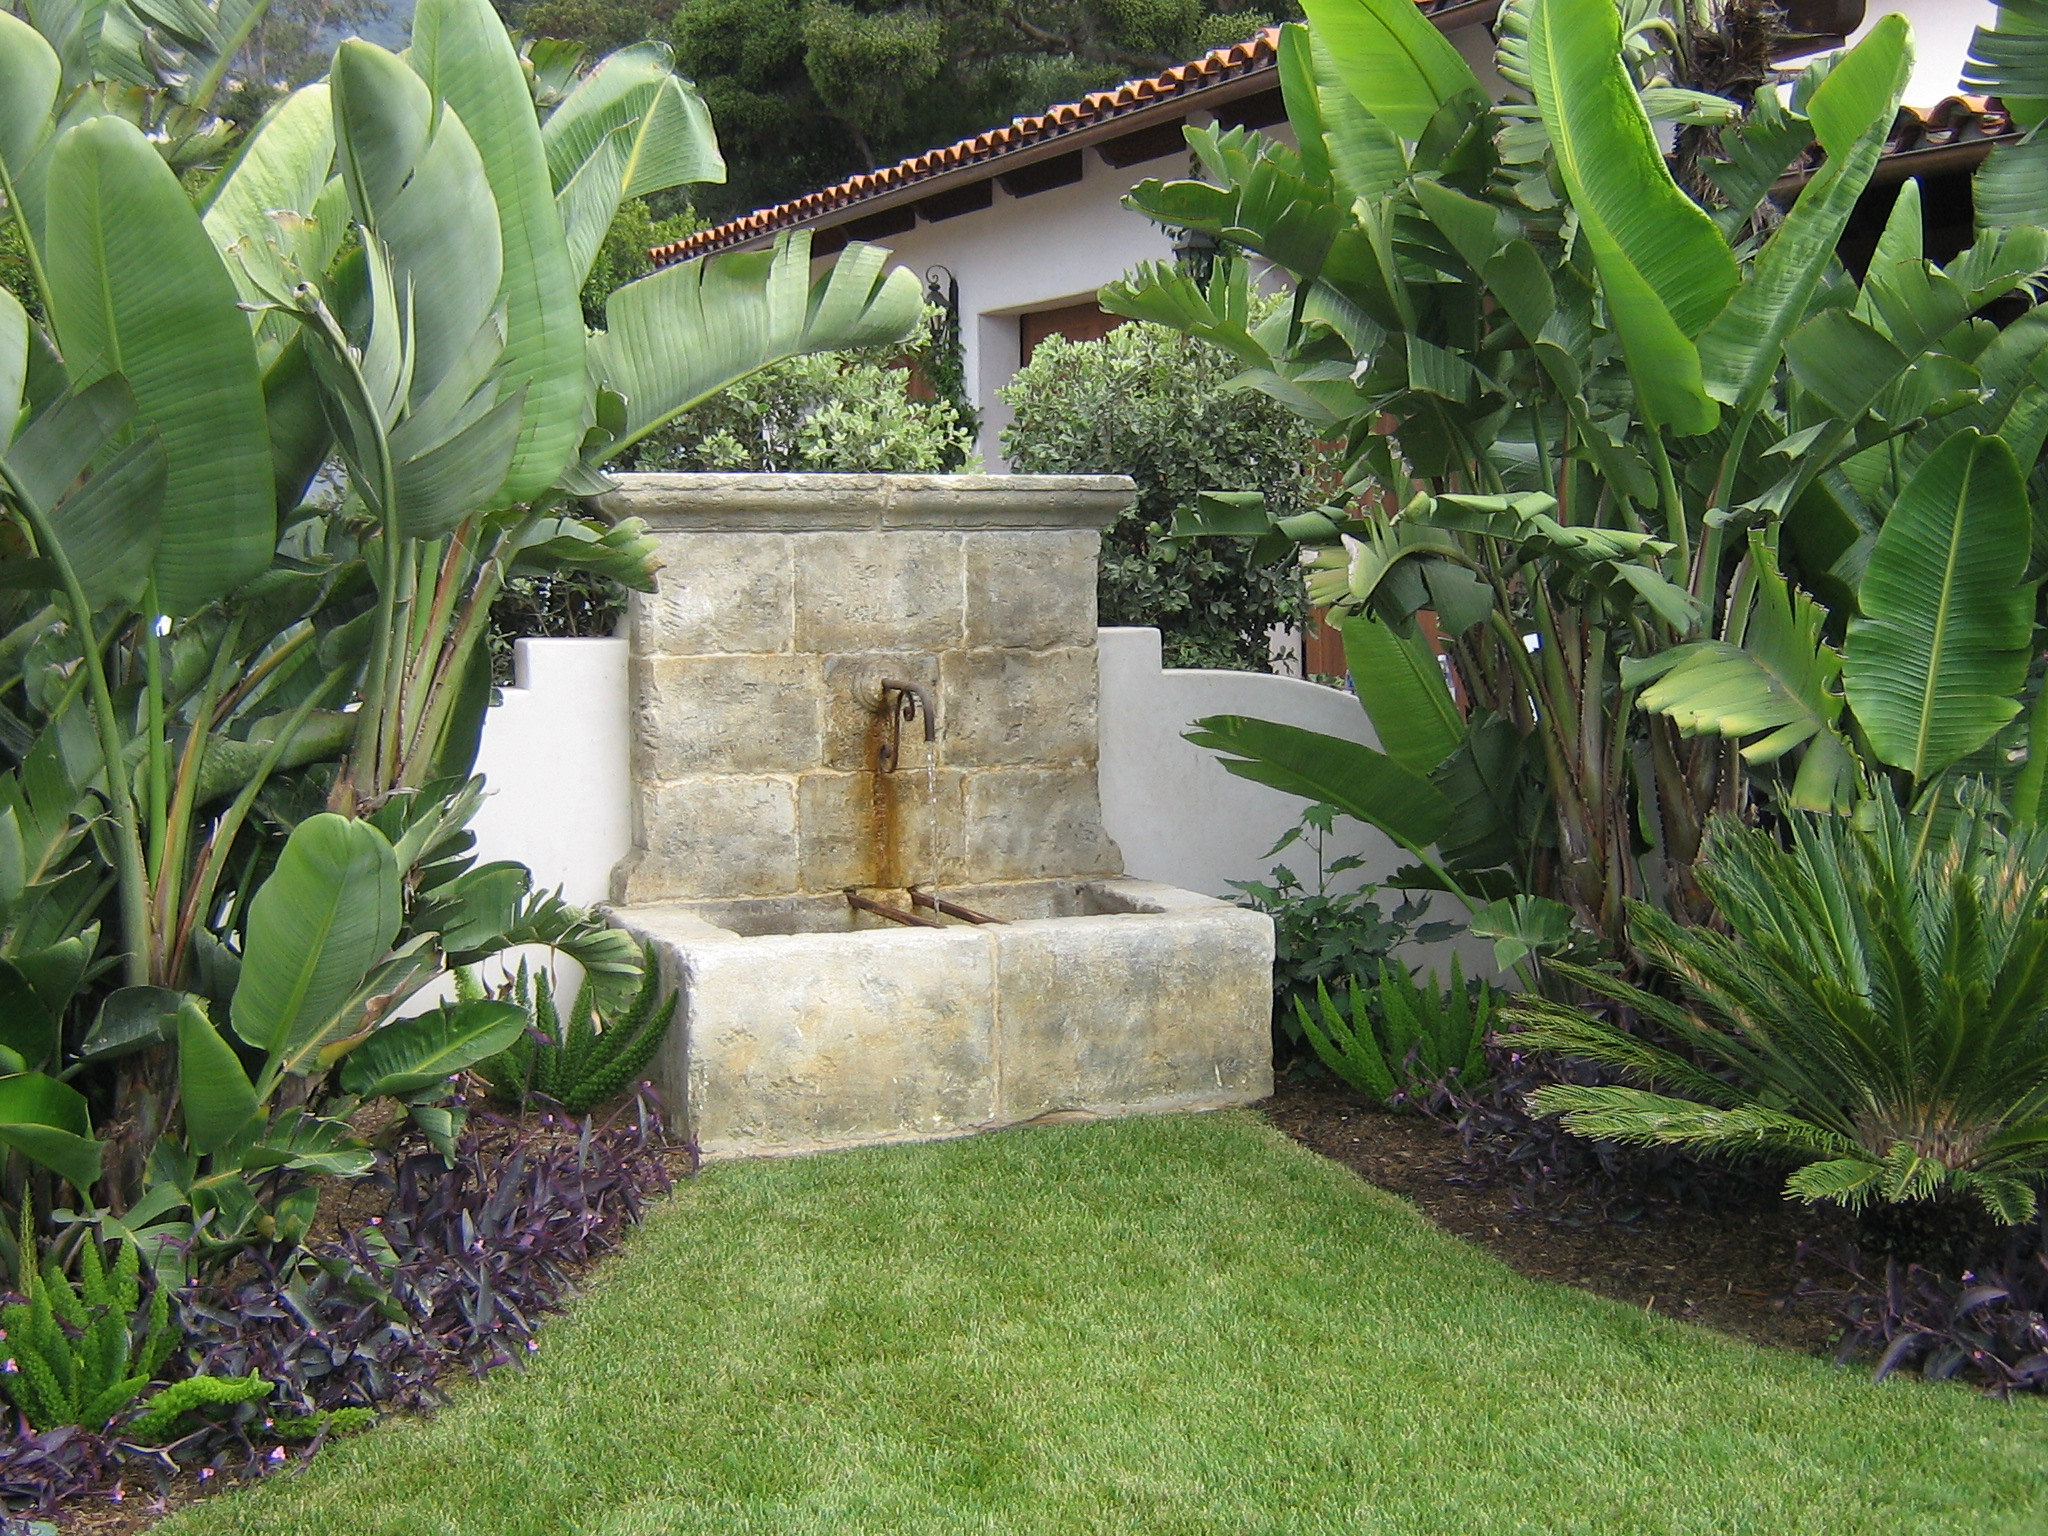 Santa barbara fountain builder garcia rock and water for Jardines con fuentes